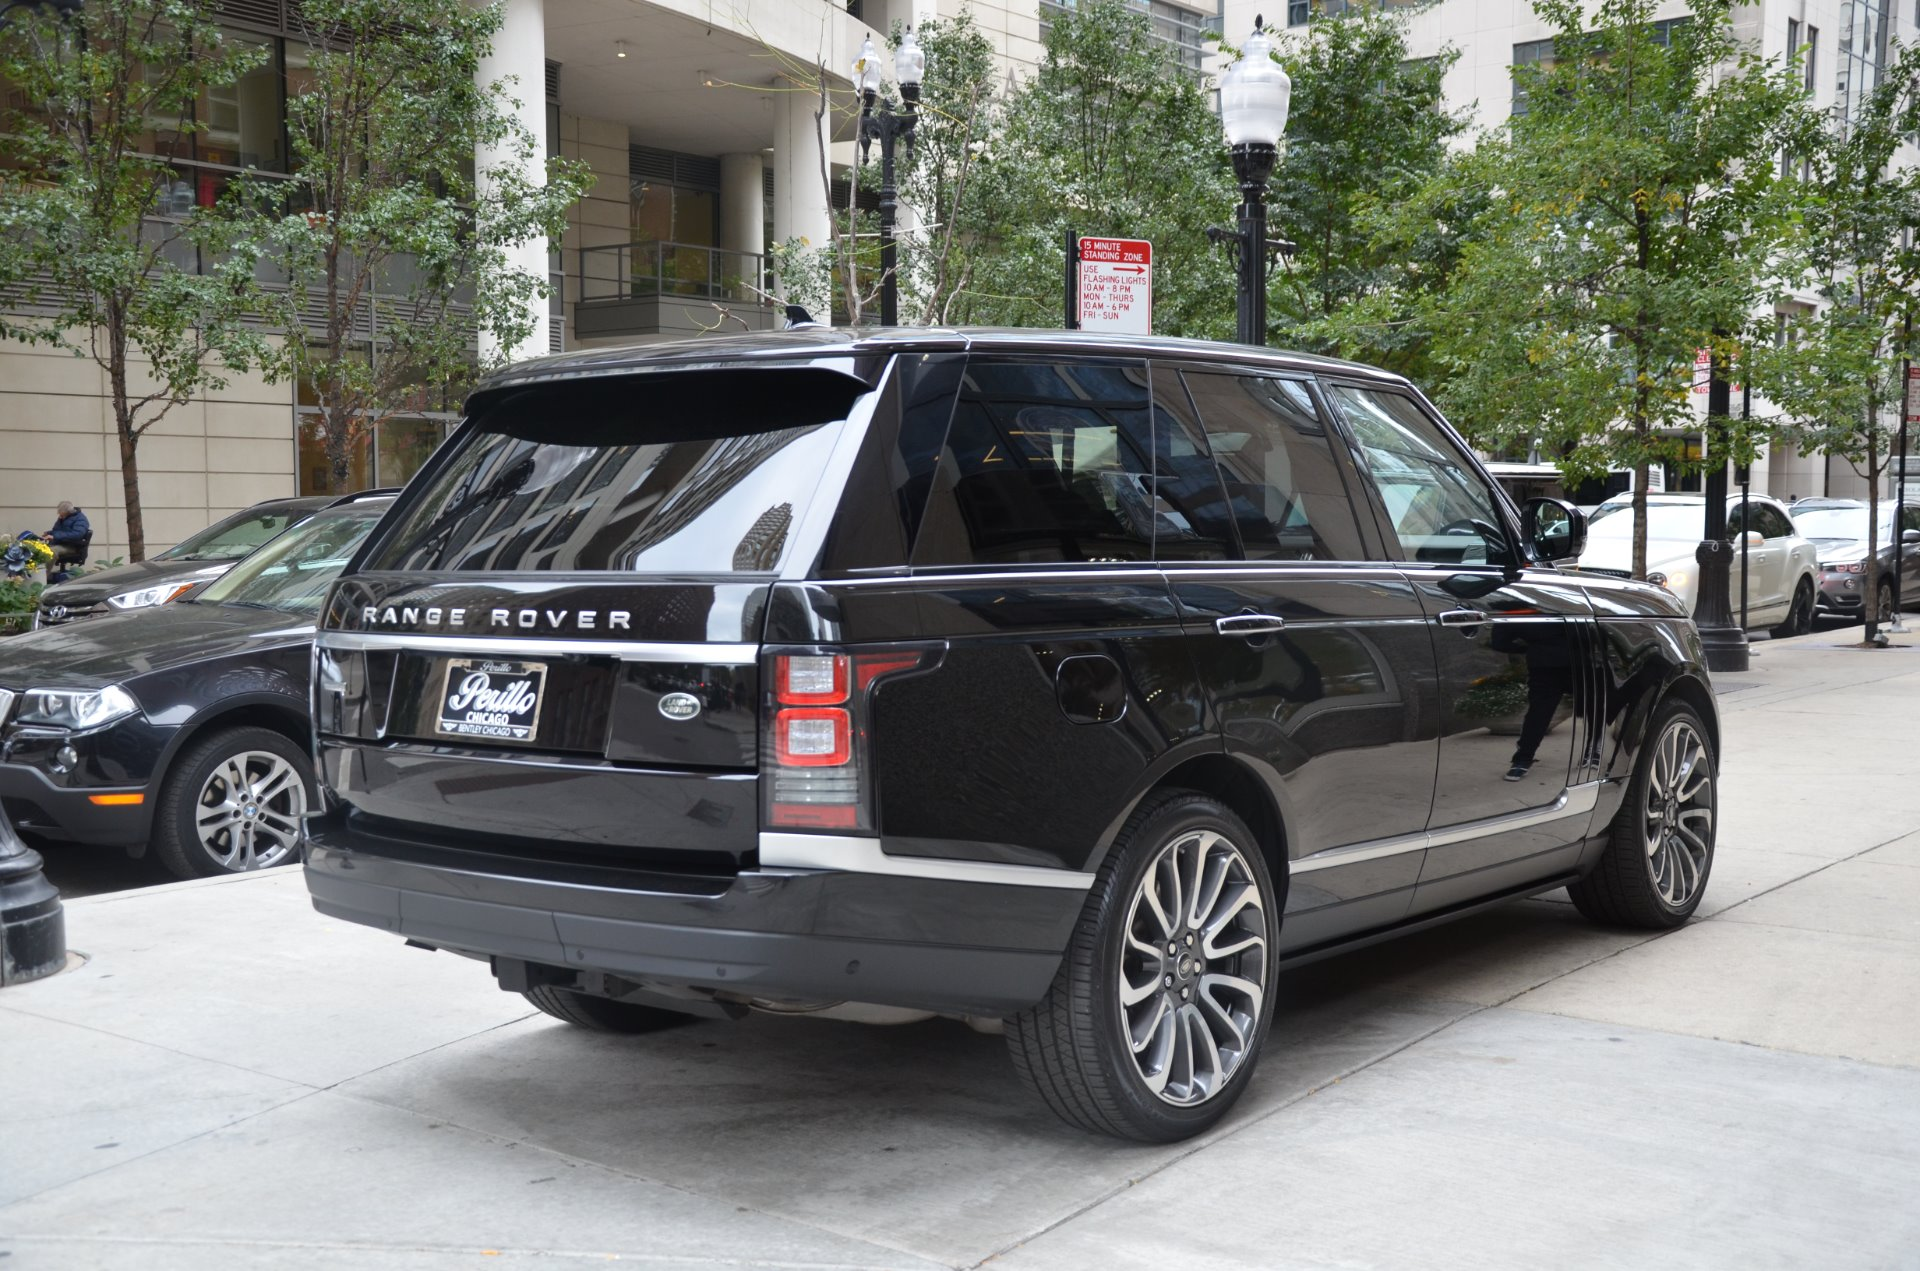 dealership dealer landrover special new range sport models in lease il land discovery rover htm chicago